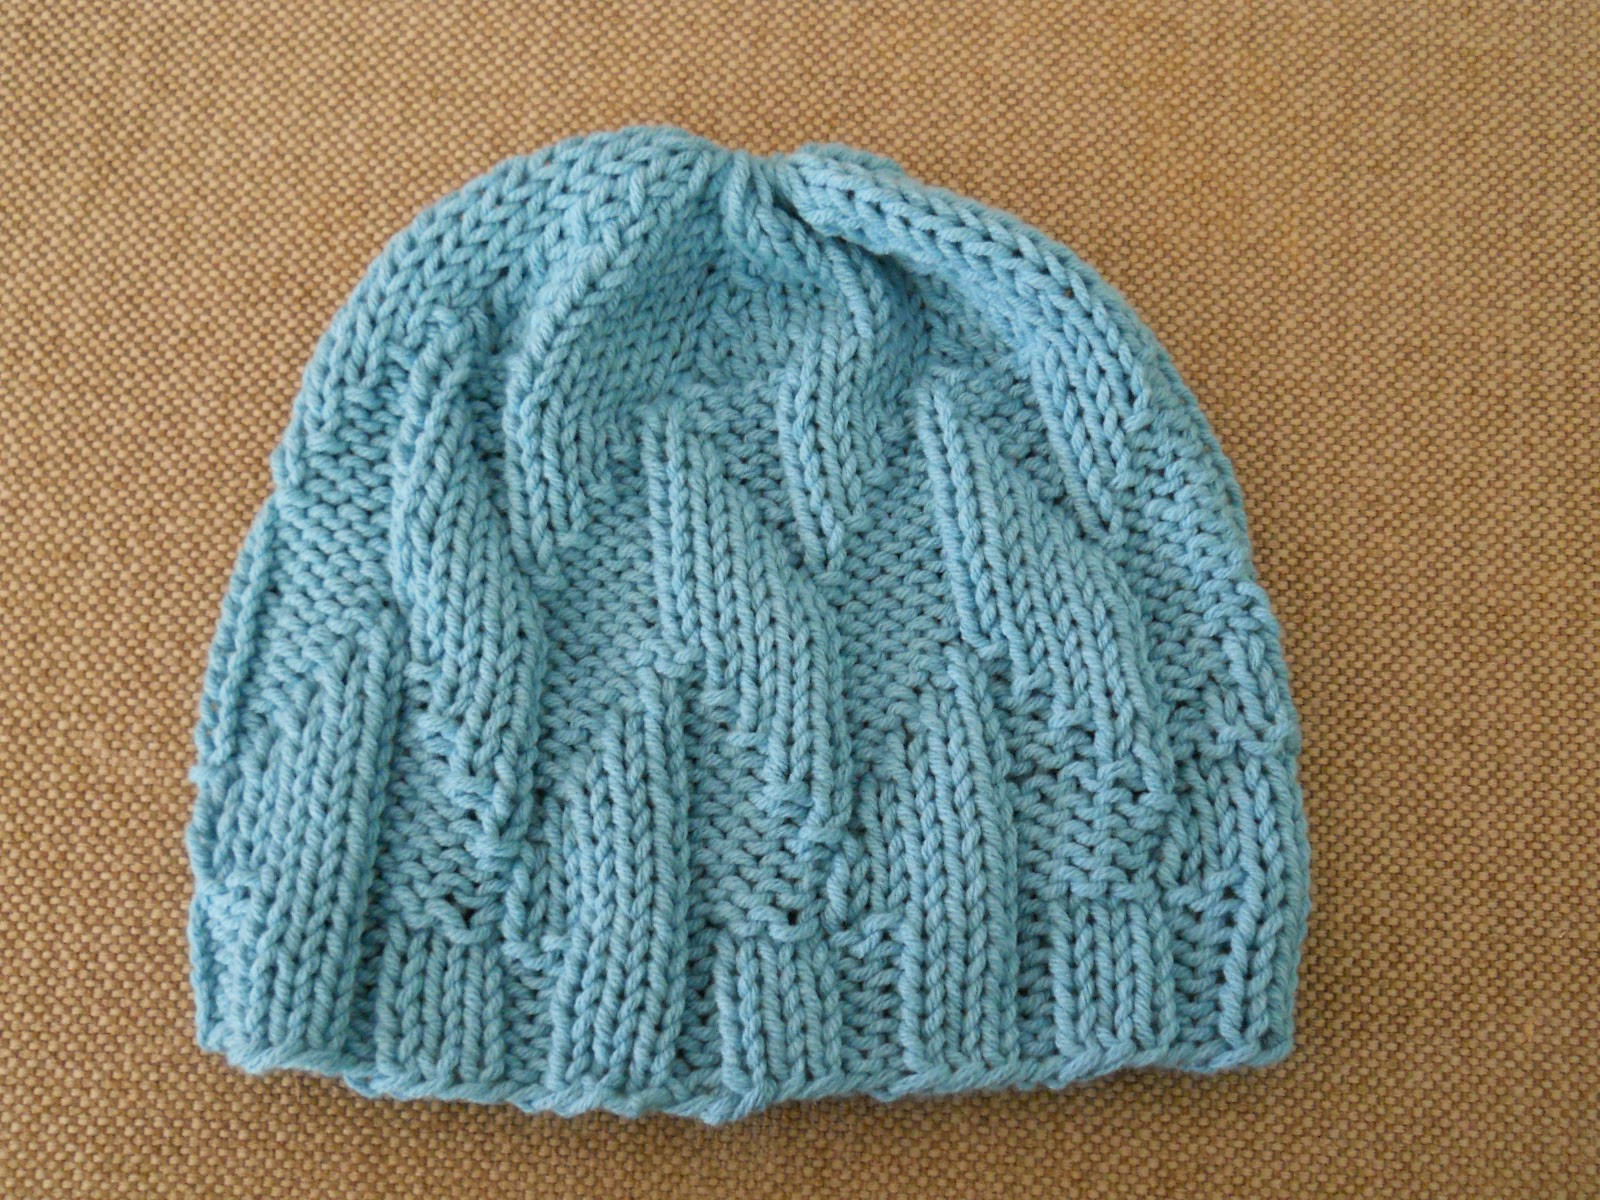 Best Of Knitting with Schnapps Introducing the Waves Of Hope Knitted Chemo Hat Patterns Of Charming 49 Photos Knitted Chemo Hat Patterns